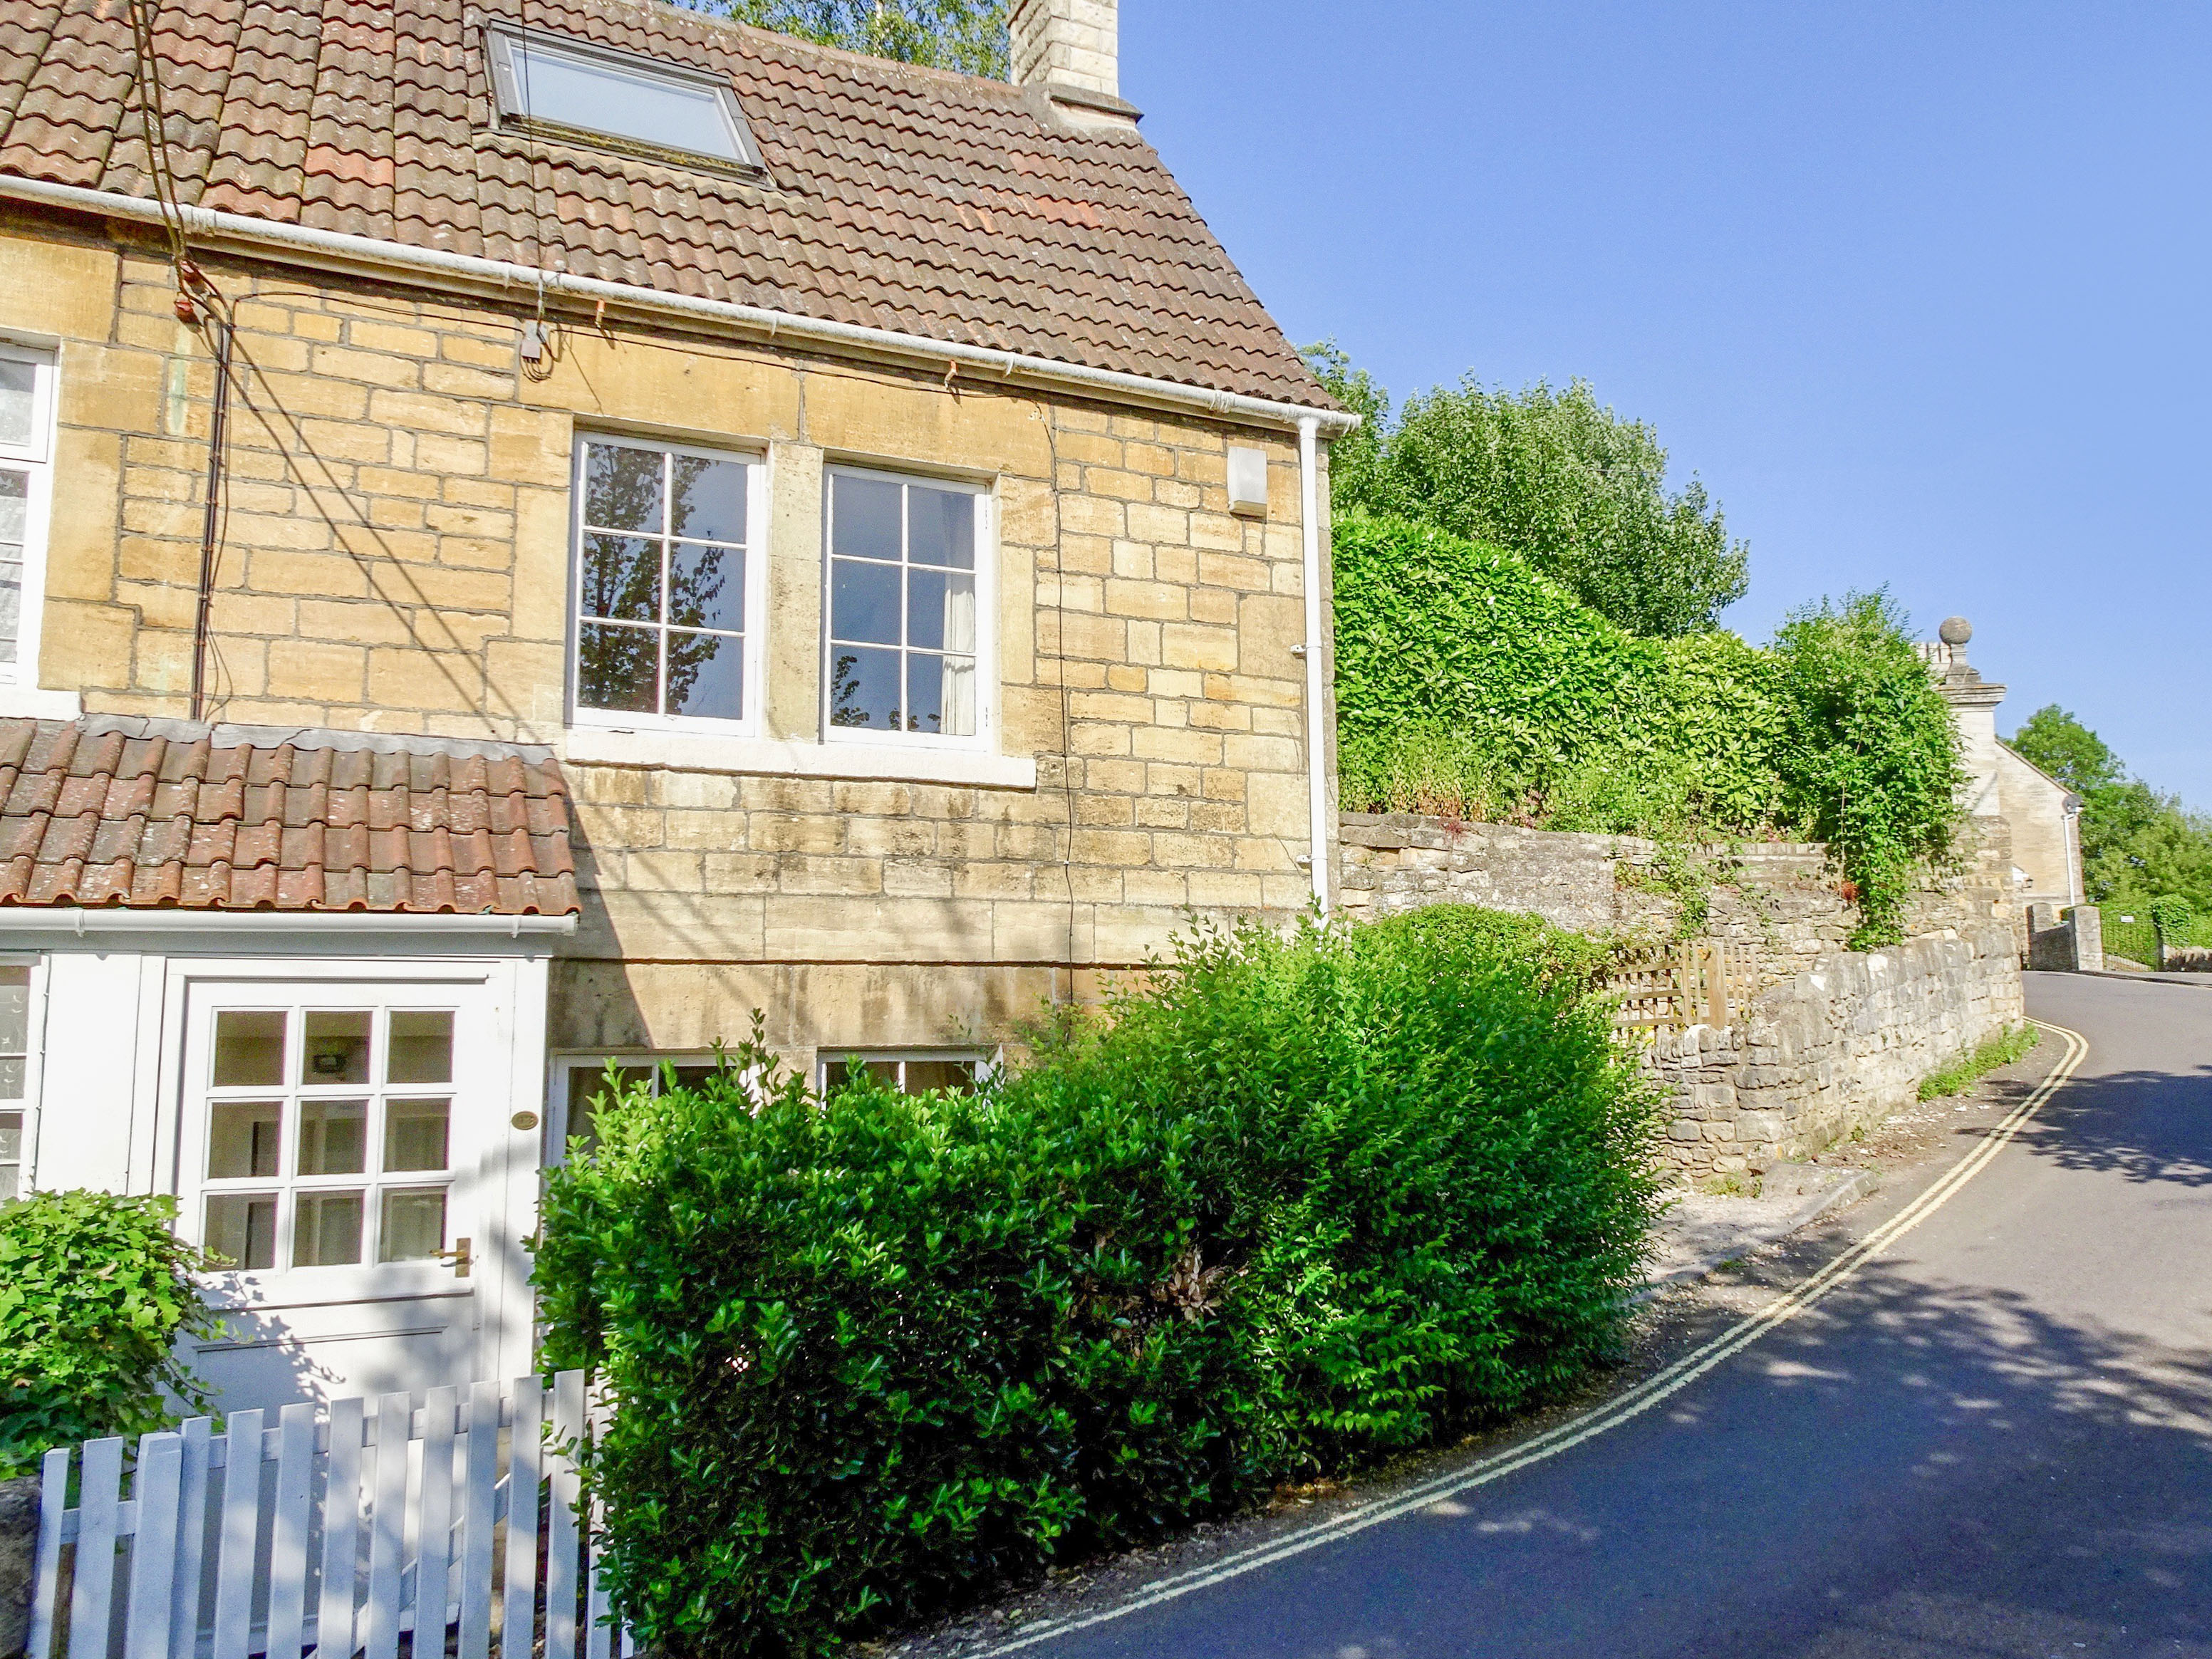 2 bedroom Cottage for rent in Bradford on Avon